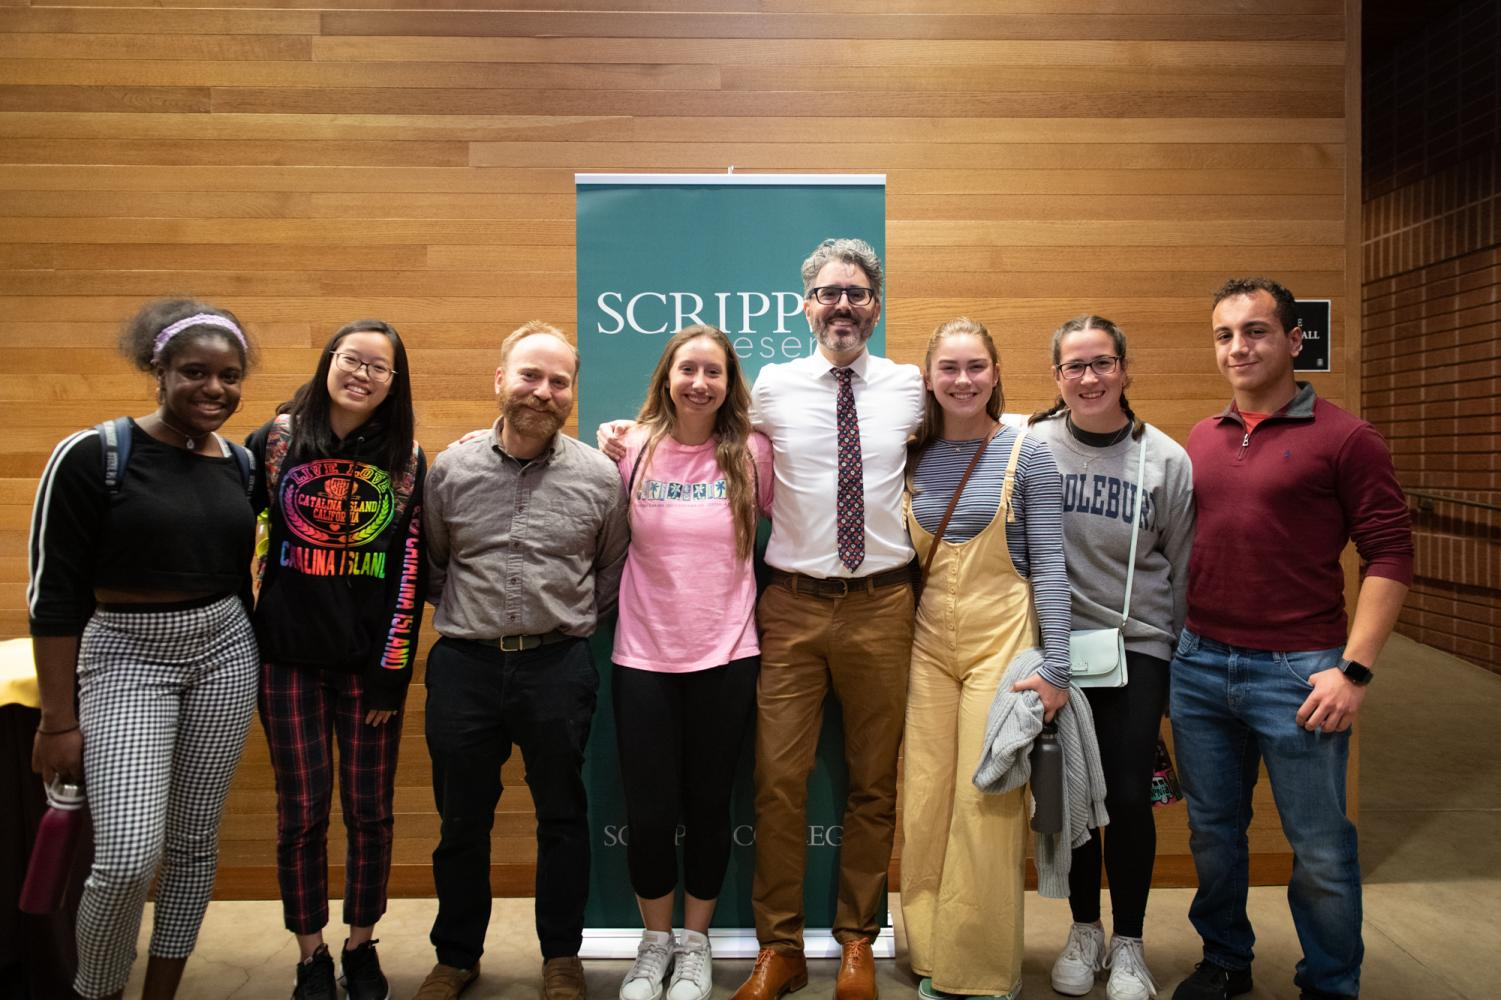 Janina Akporavbare ('22), Sunny Yu ('22), Dr. Dzula, Laura Haushalter ('21), Bianca Arteaga ('22), Nichola Monore ('22), and Mo Igbaria ('20) pose for a photo with Michael Barbaro after listening to his talk.